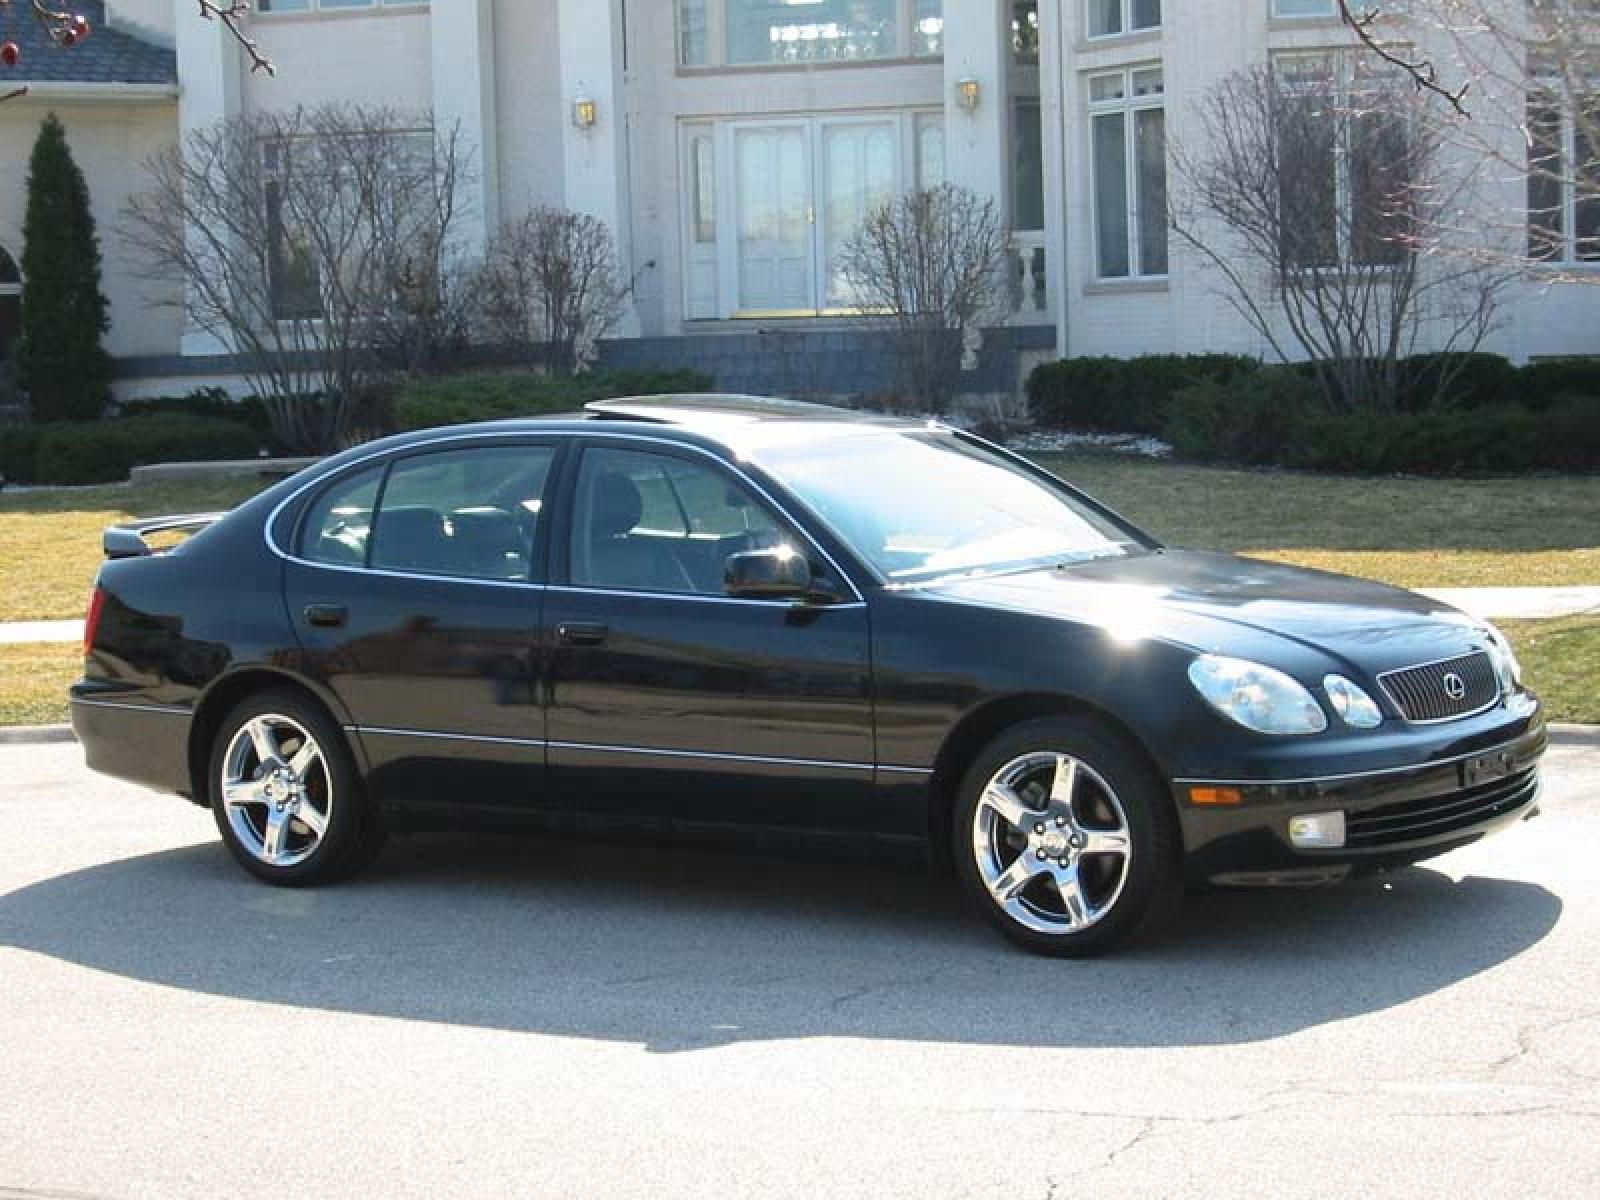 2001 Lexus GS 430 - Information and photos - ZombieDrive